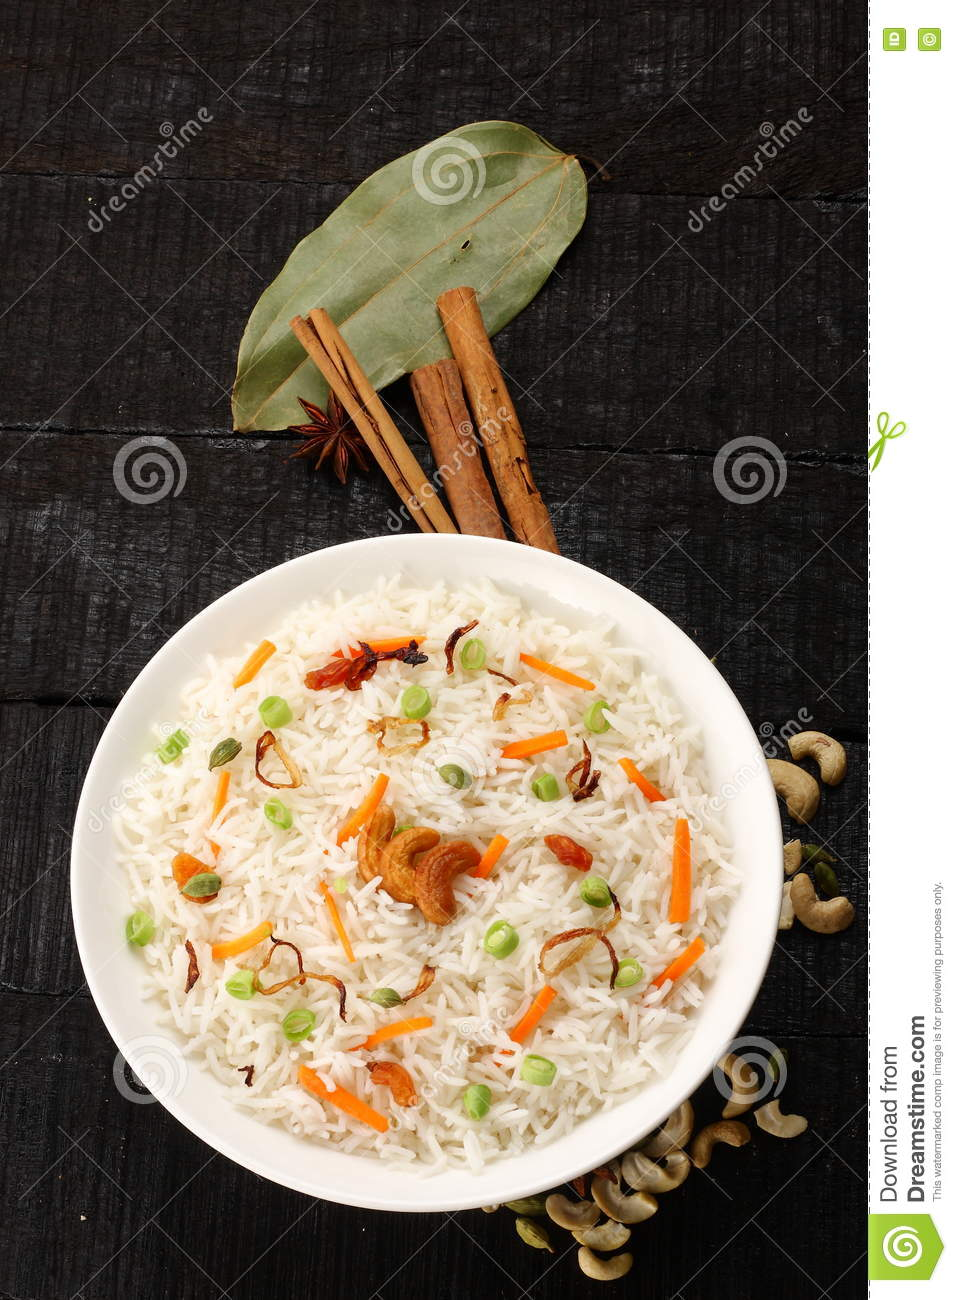 Overhead view-Bowl of delicious vegetarian fried rice with basmati rice